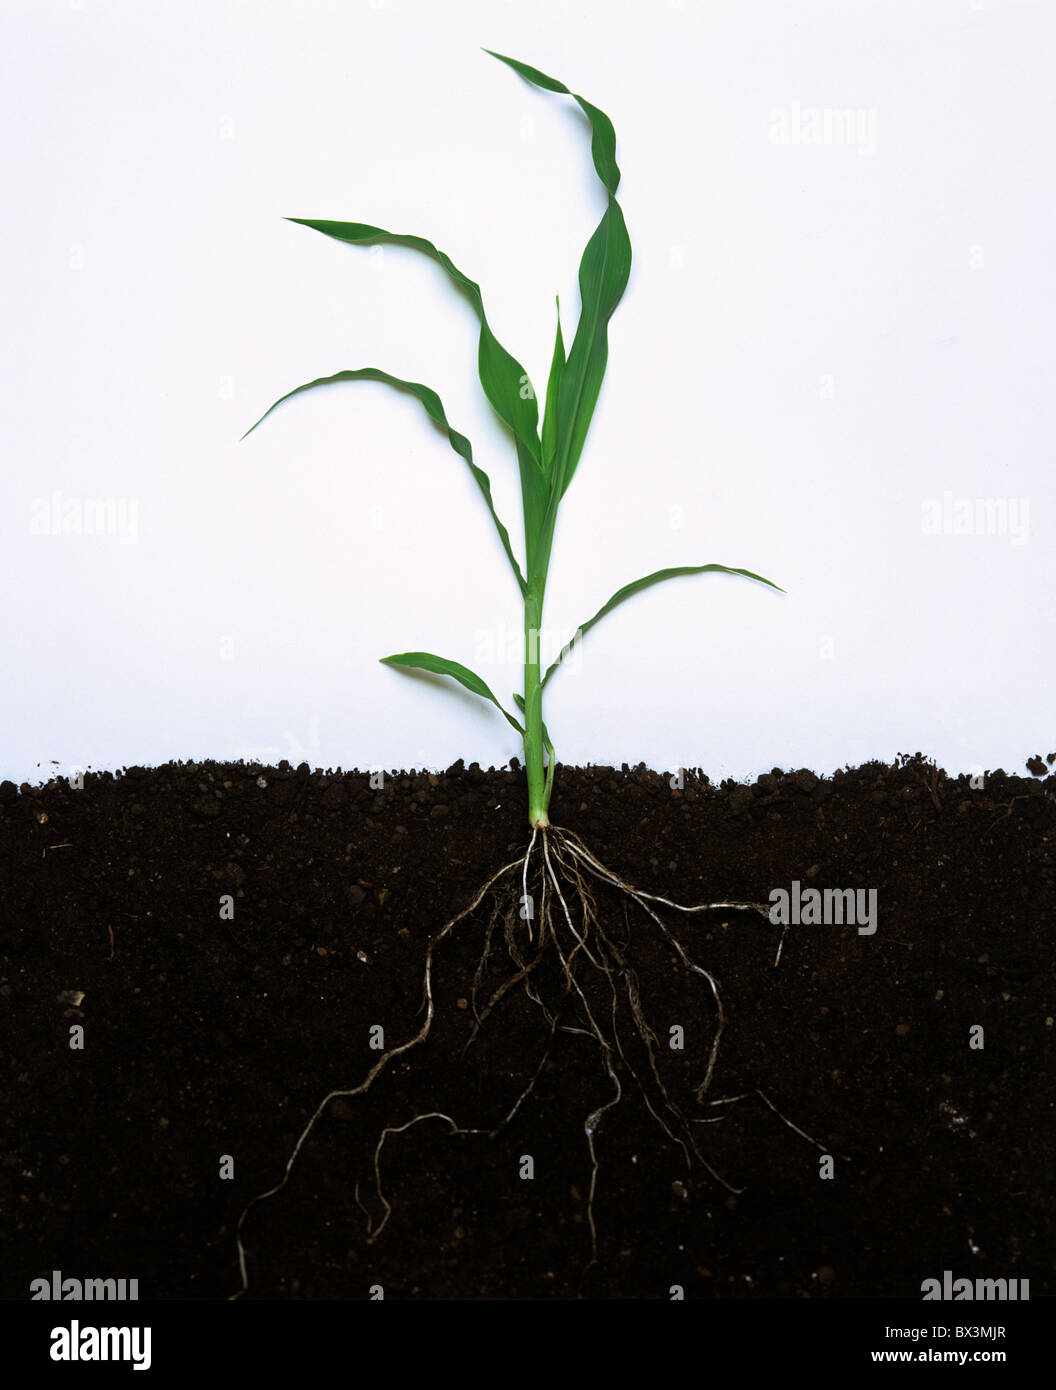 Young maize or corn whole plant with leaves and roots - Stock Image